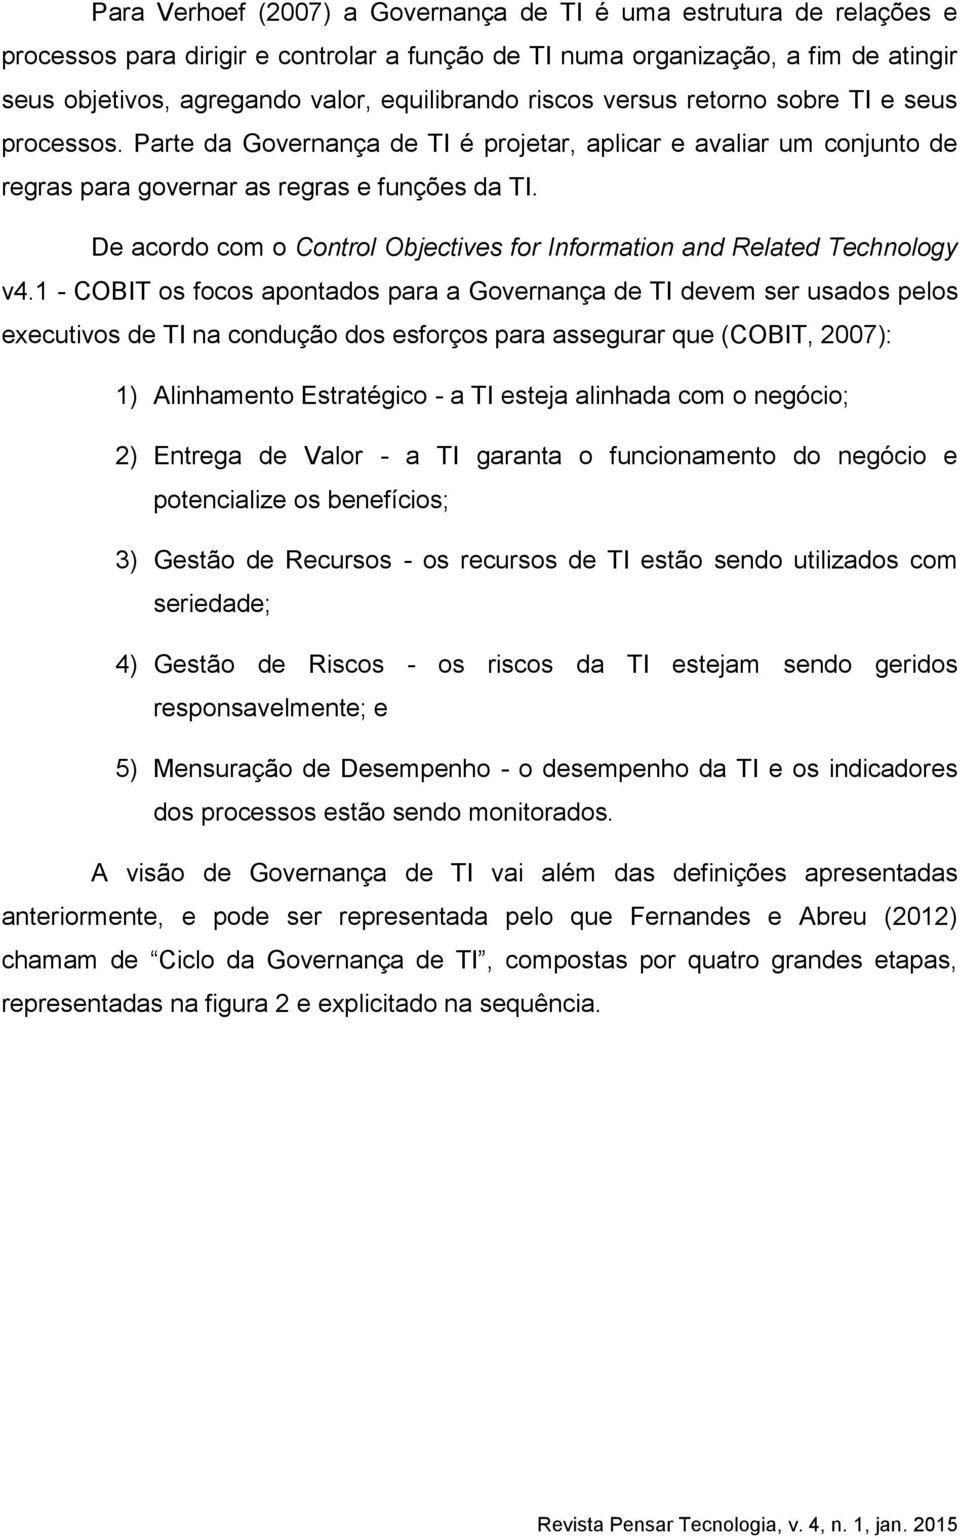 De acordo com o Control Objectives for Information and Related Technology v4.